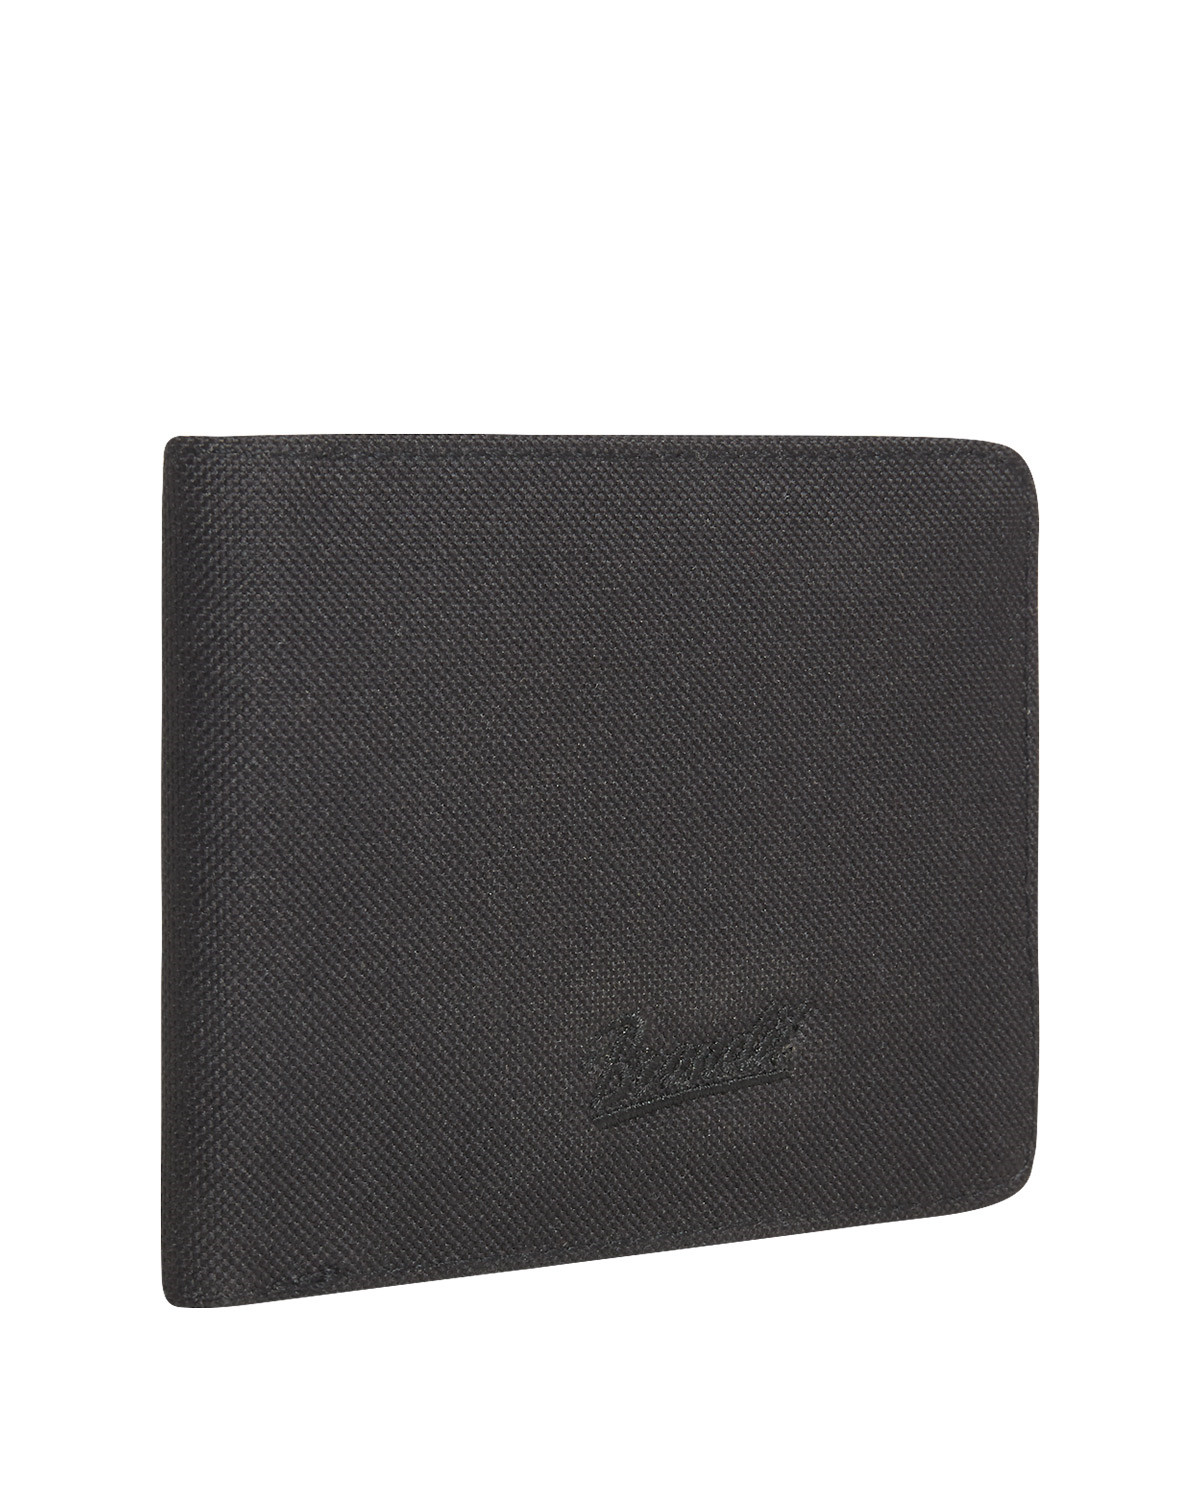 Image of   Brandit Wallet Four (Sort, One Size)